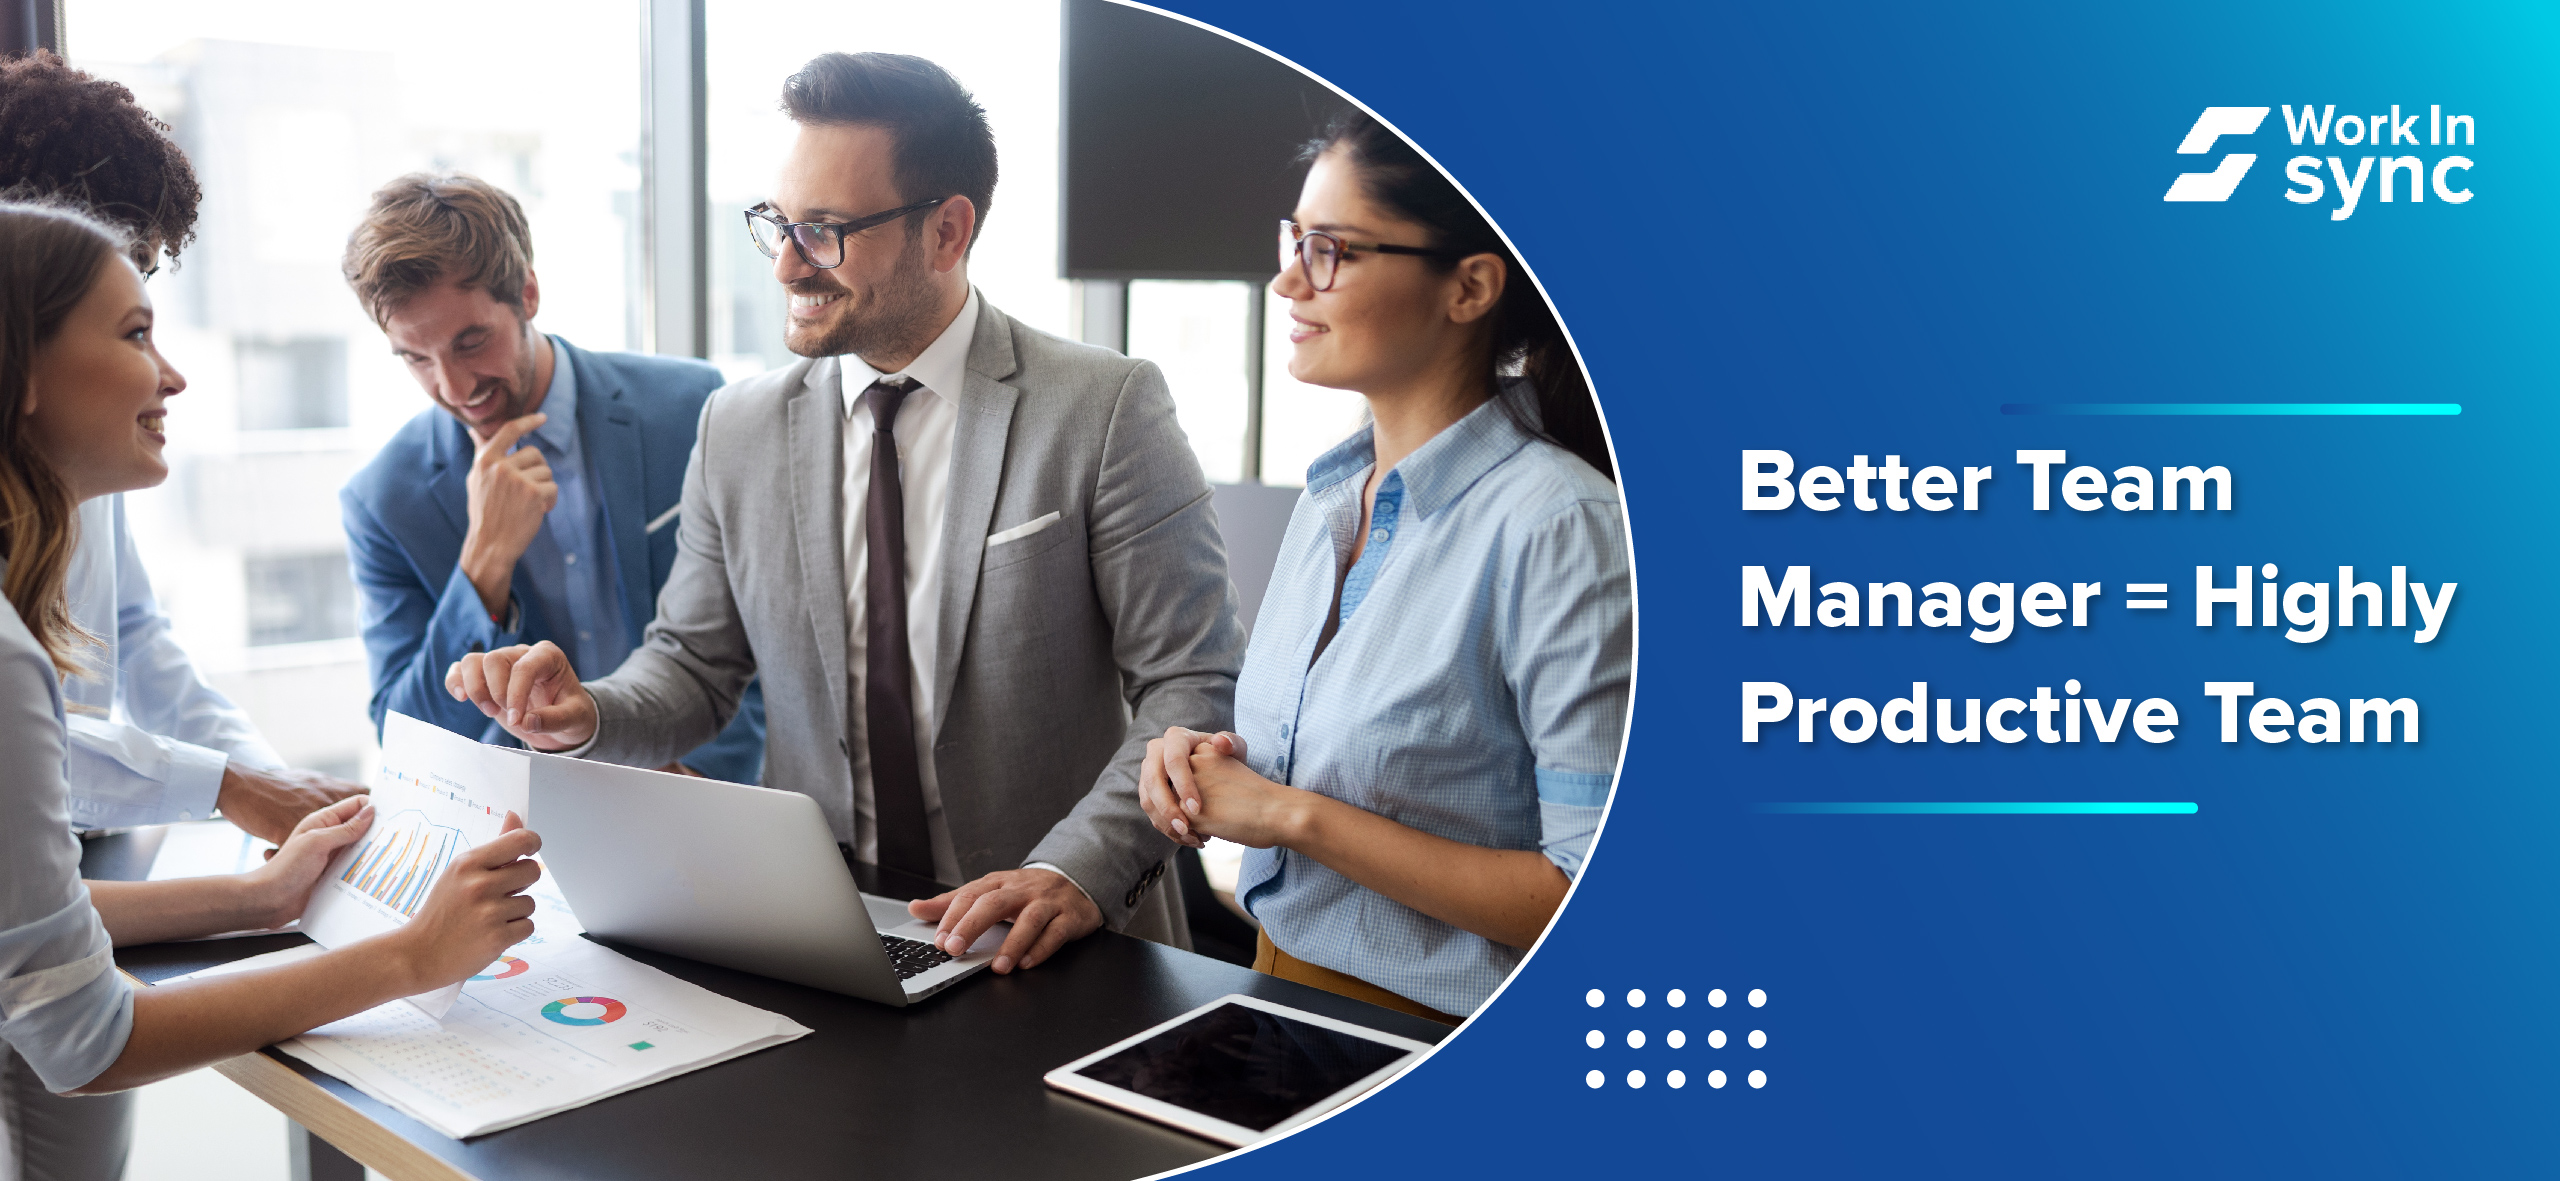 Better Team Manager = Highly Productive Team